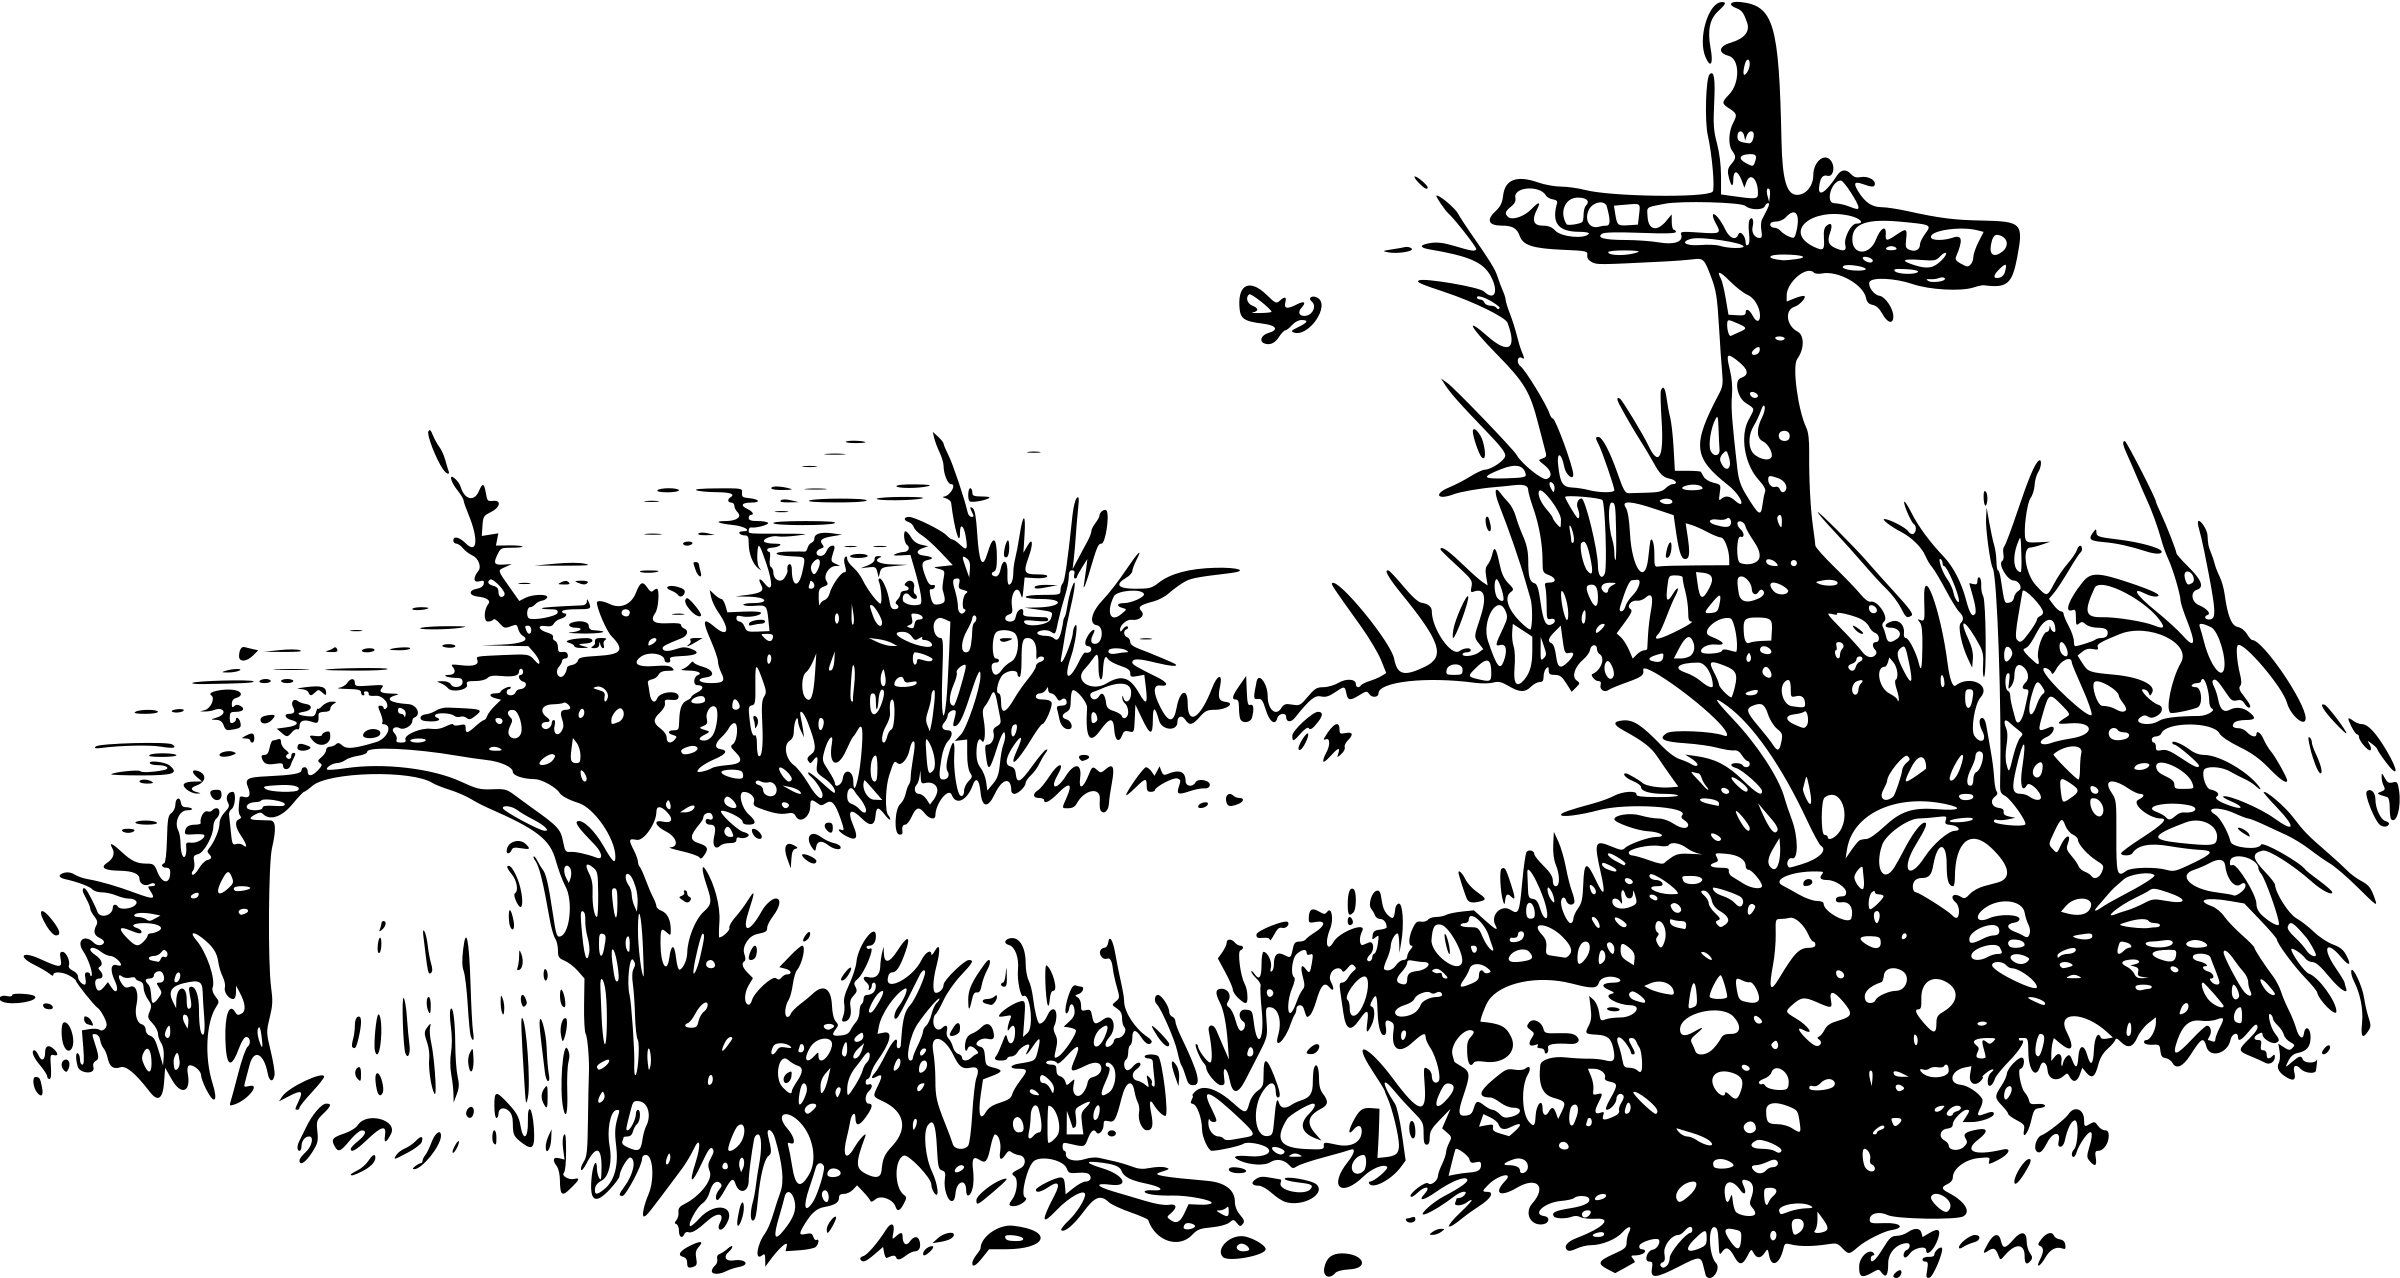 graphic download Cemetery clipart. Transparent png stickpng.